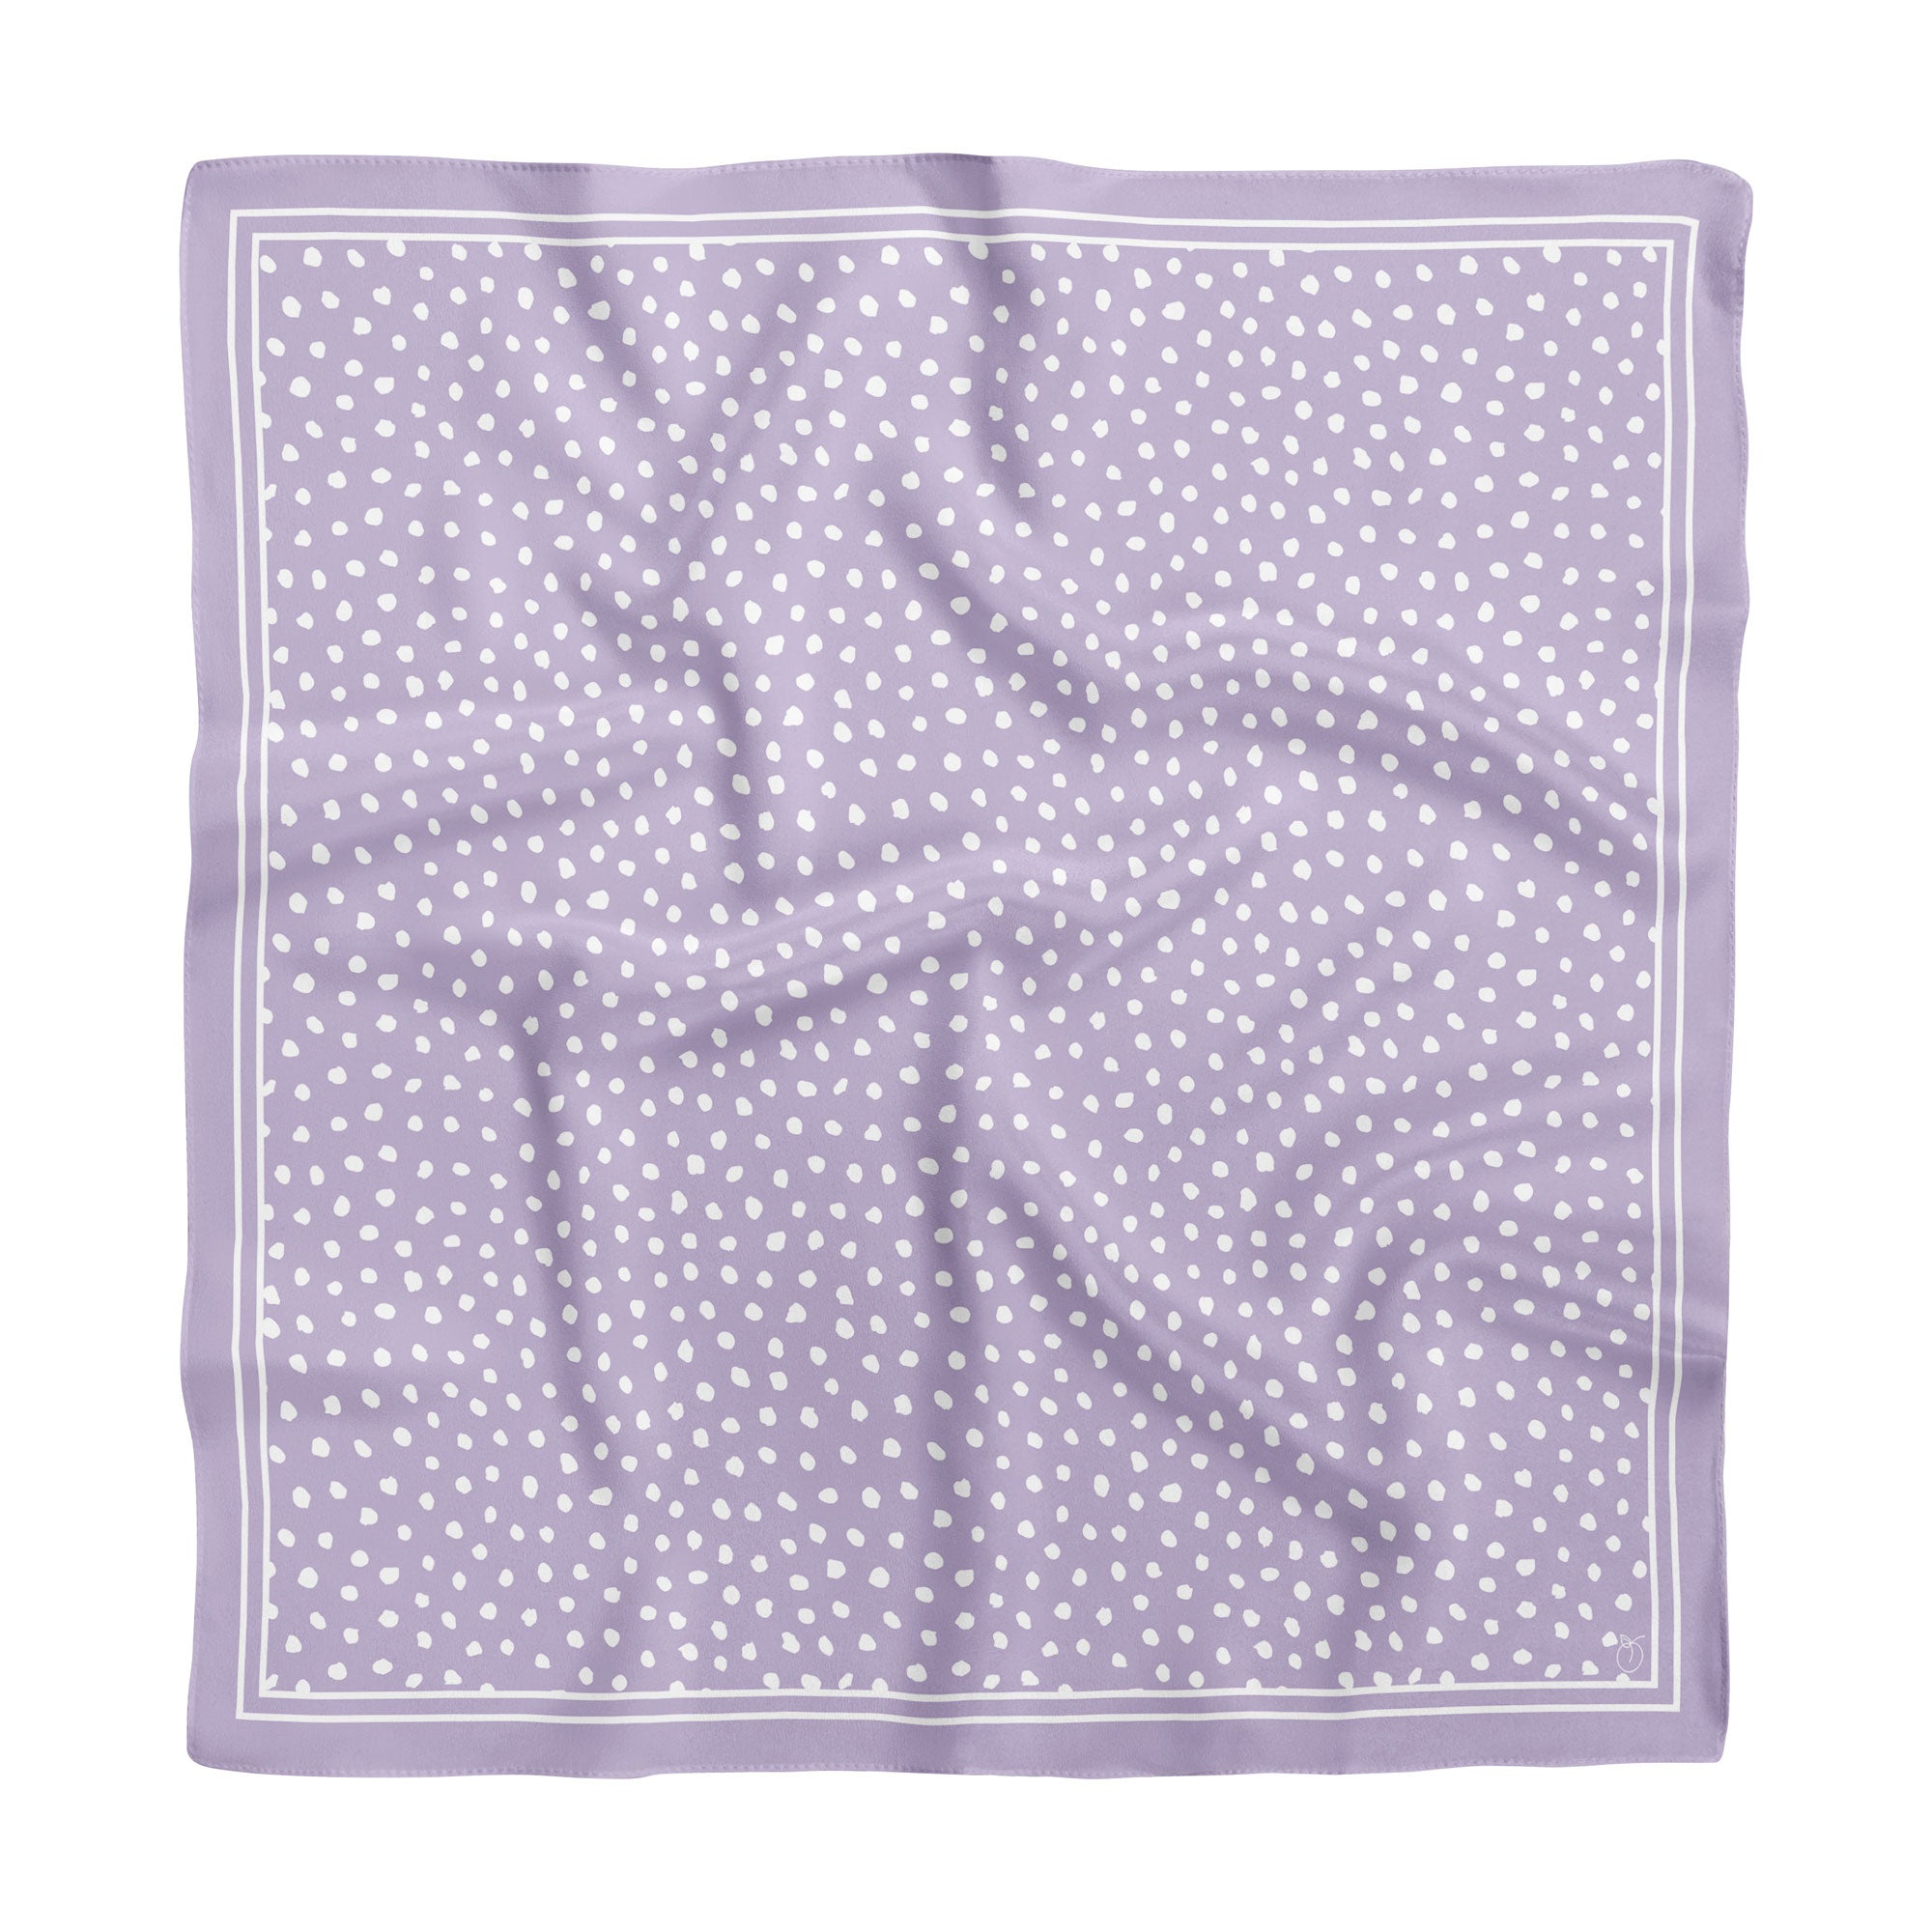 Lilac Spot On Classic Square Silk Scarf